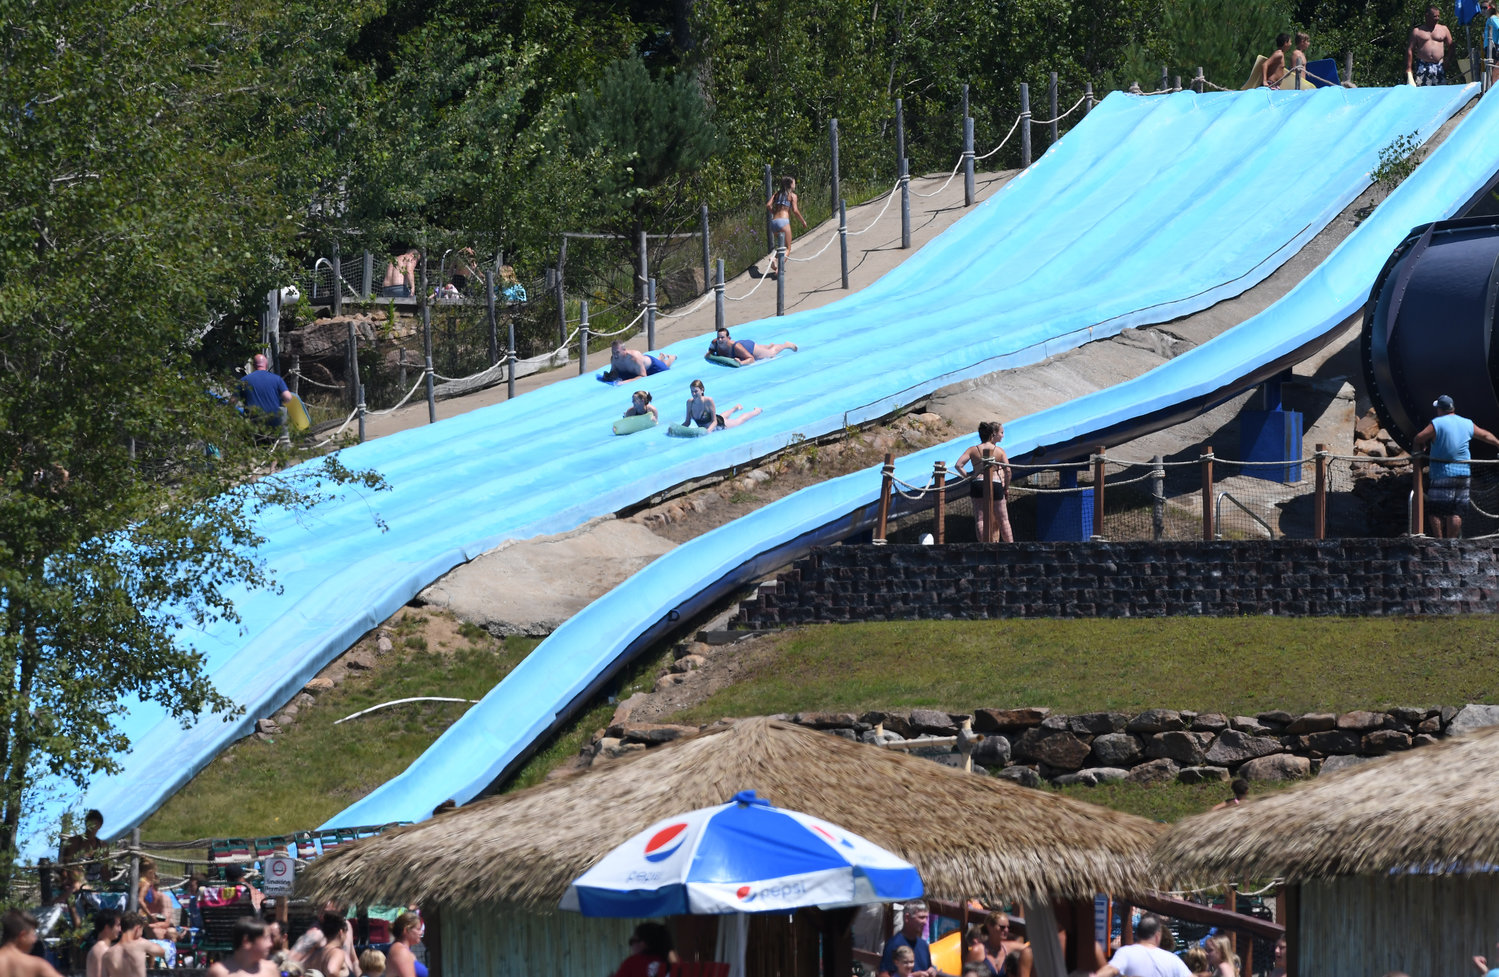 SLIP SLIDING AWAY — Riders on mats zip down the Serengeti Surf Hill, on the left, at the Enchanted Forest Water Safari theme park earlier this week. The popular park, which boasts more than 200,000 visitors each summer, has announced plans to replace the popular mat ride, along with another older slide, Killermanjaro, shown on the right. The work will be performed after the park closes for the season in September with the new rides being up and ready for action at the start of next season in June 2020.